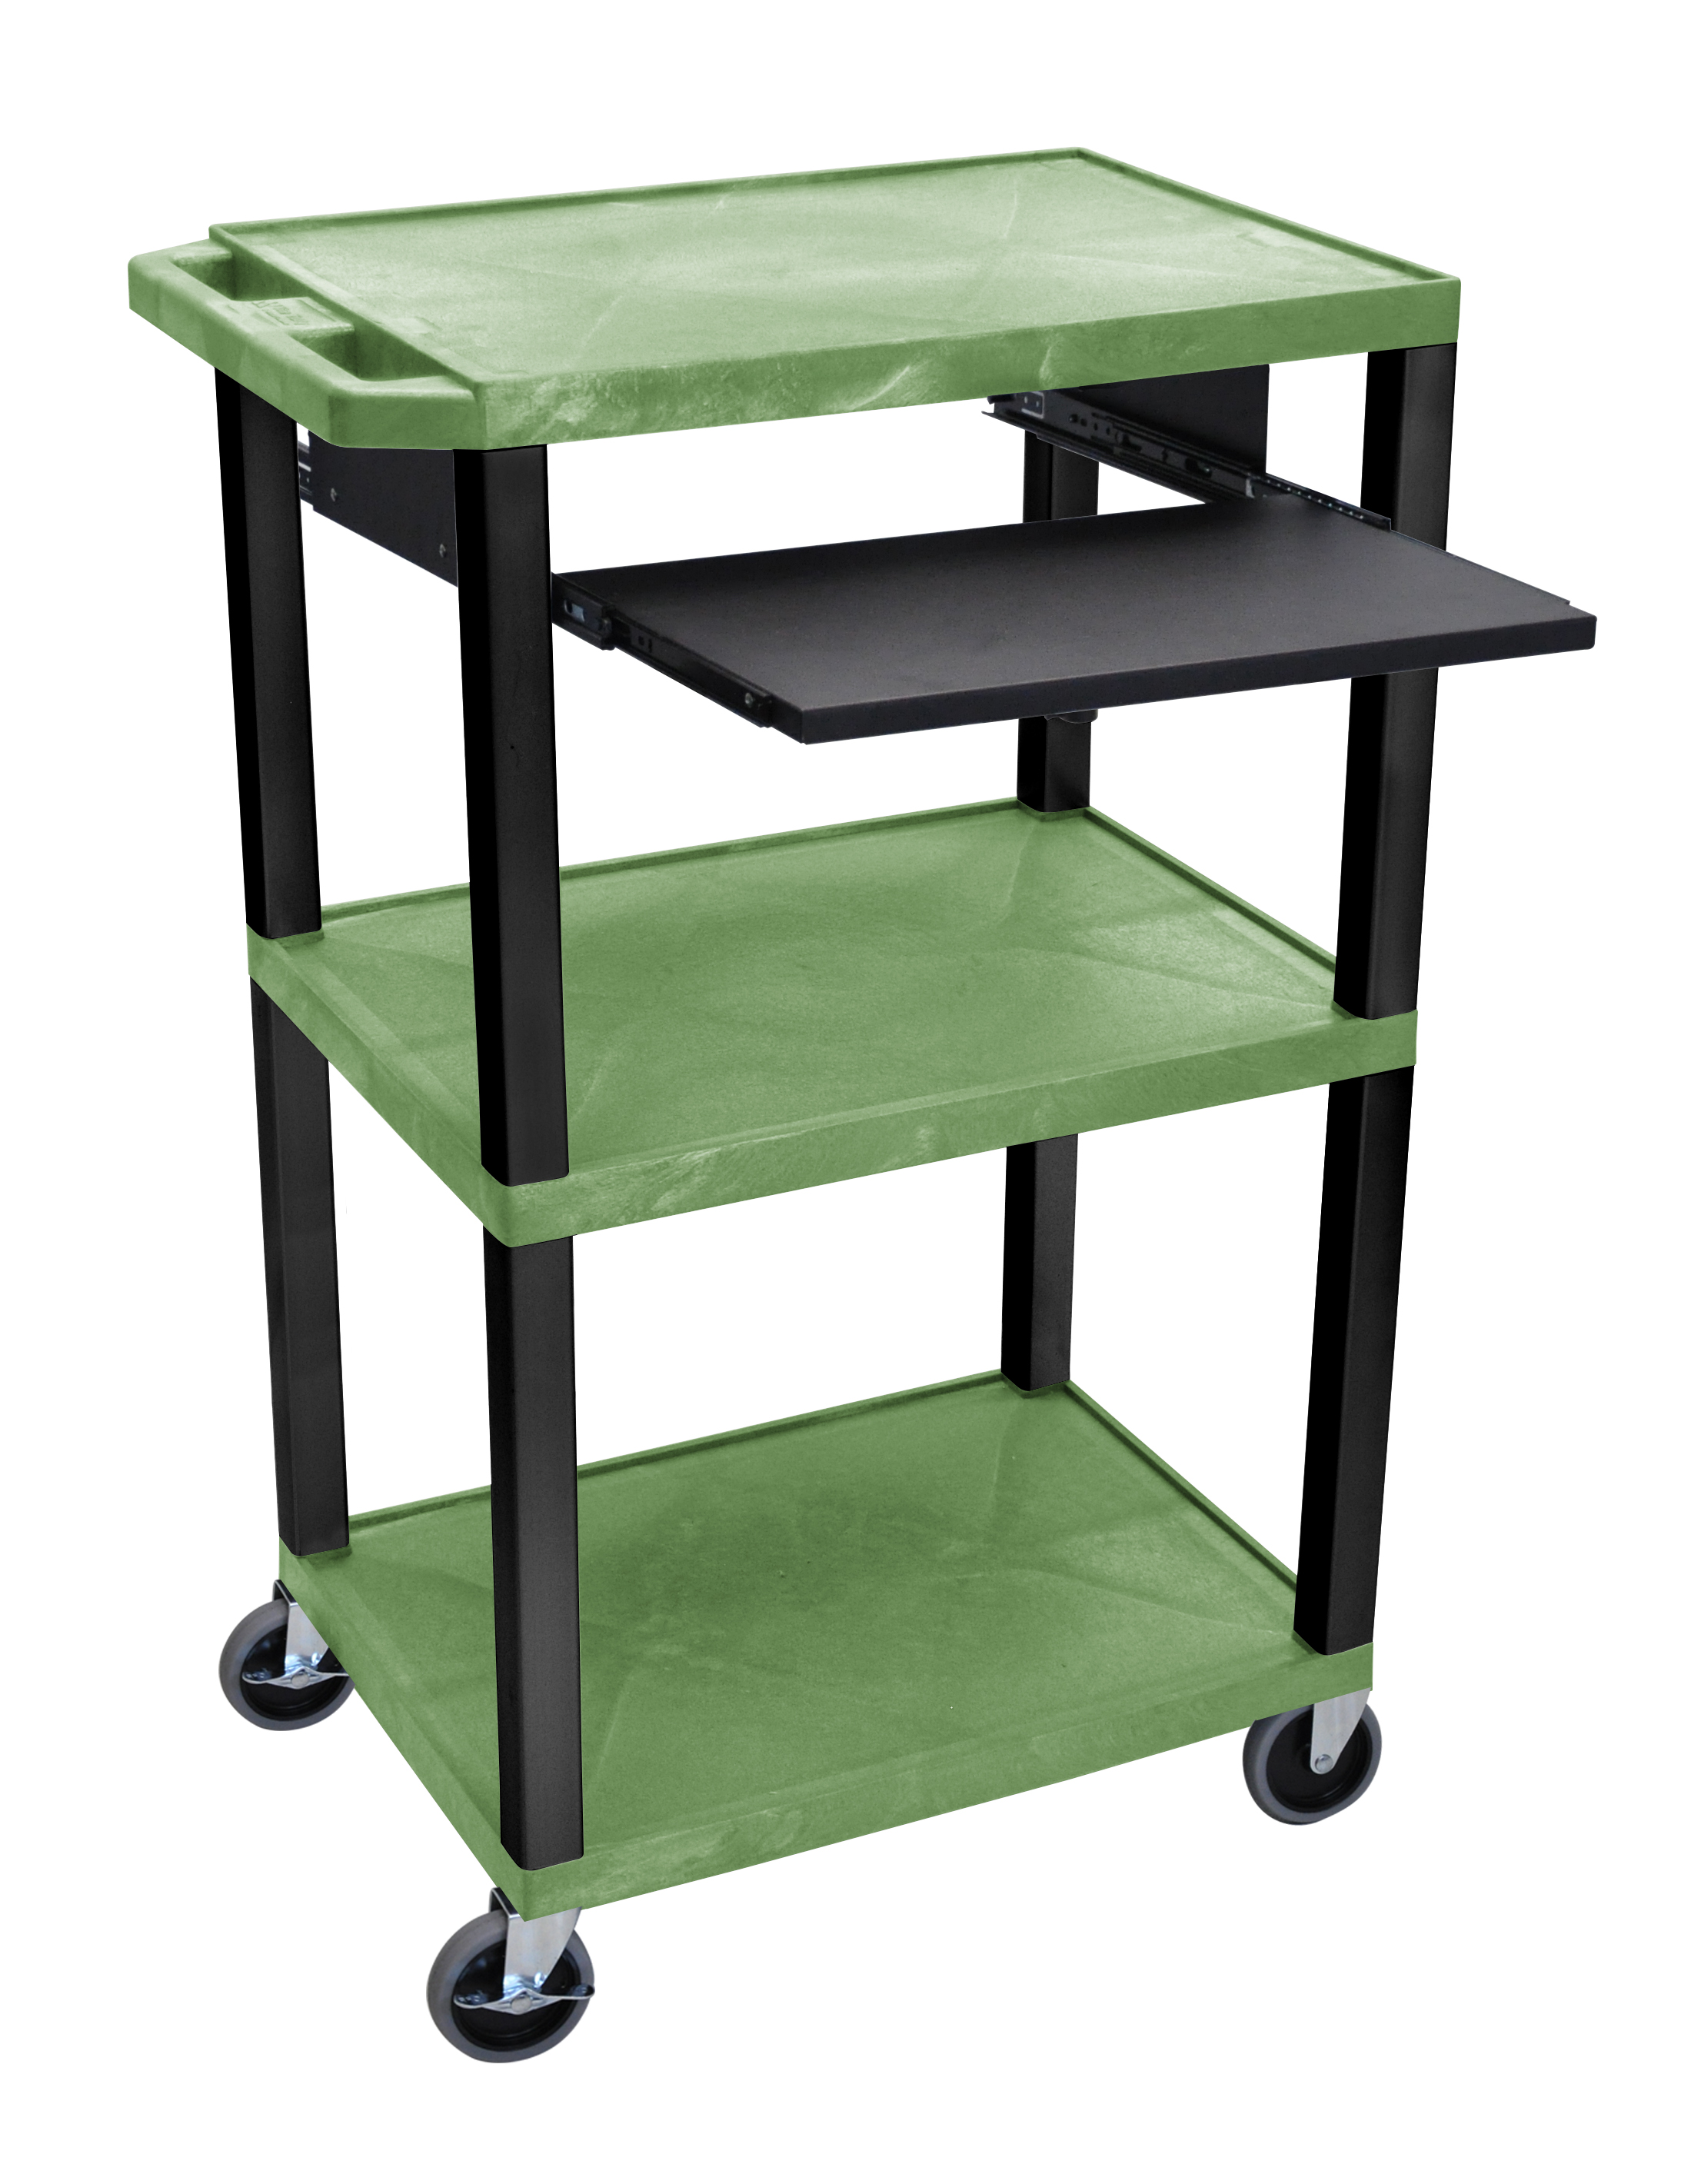 Offex Presentation Cart with Open Shelves and Pull Out Tray Green and Black